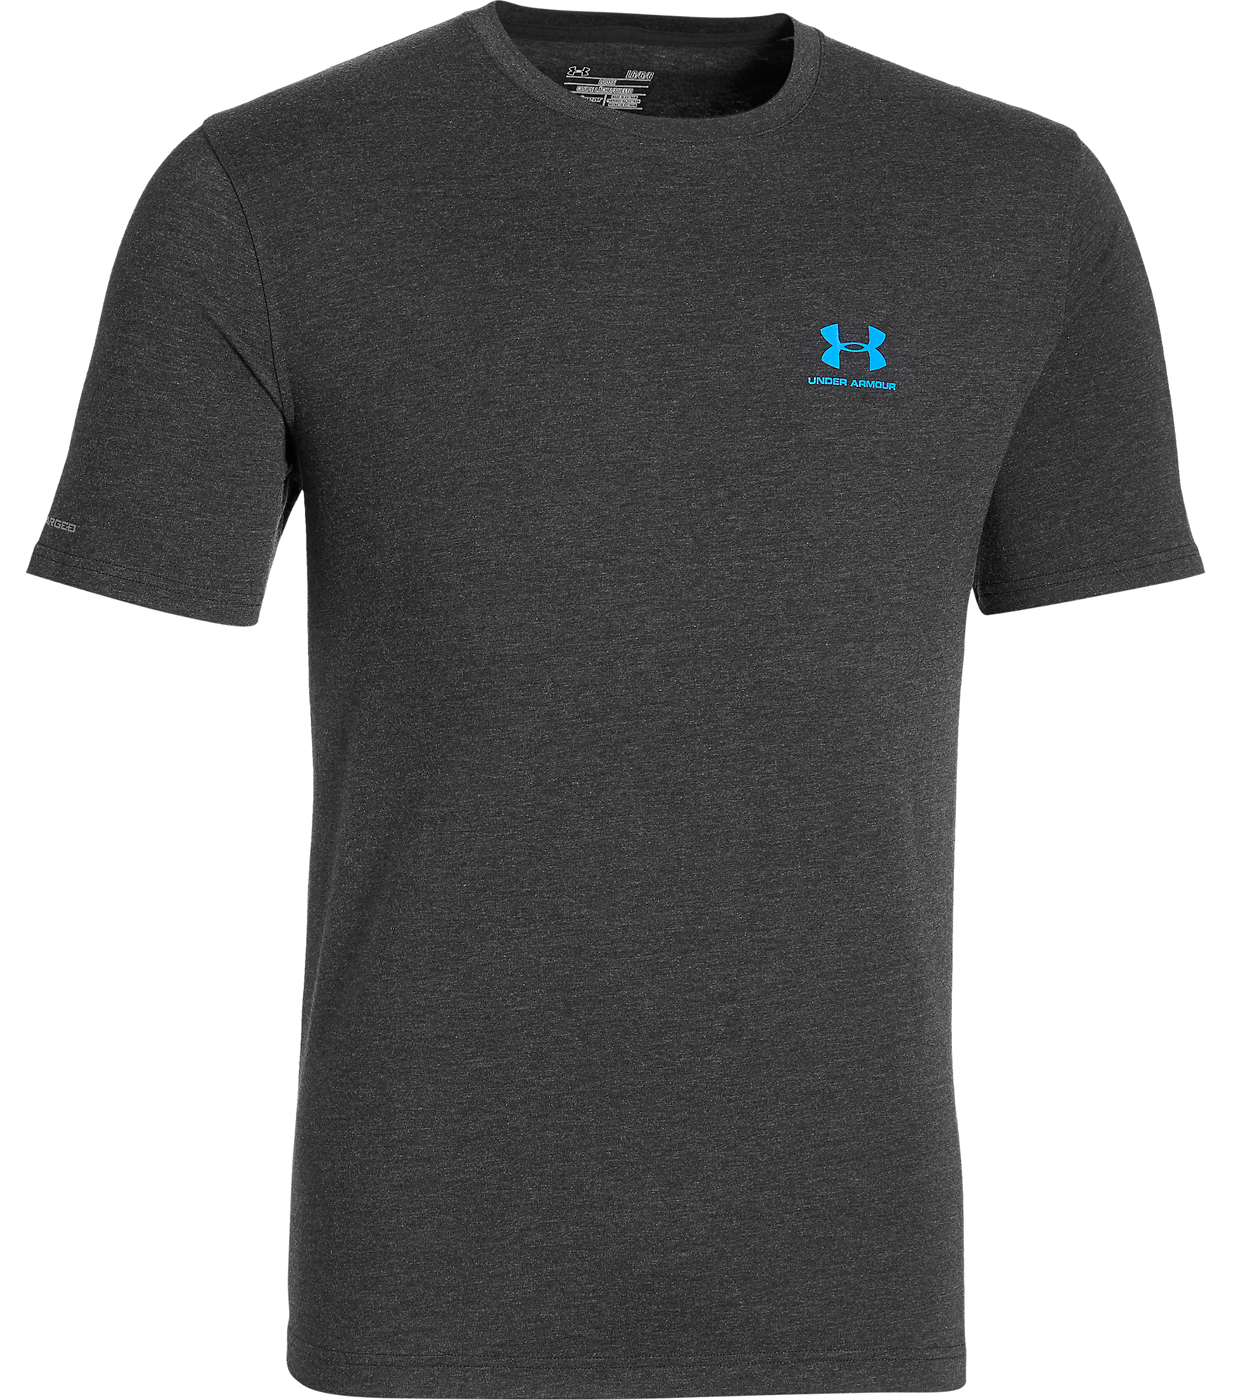 Under armour men 39 s charged cotton t shirt for Under armour charged cotton shirts mens